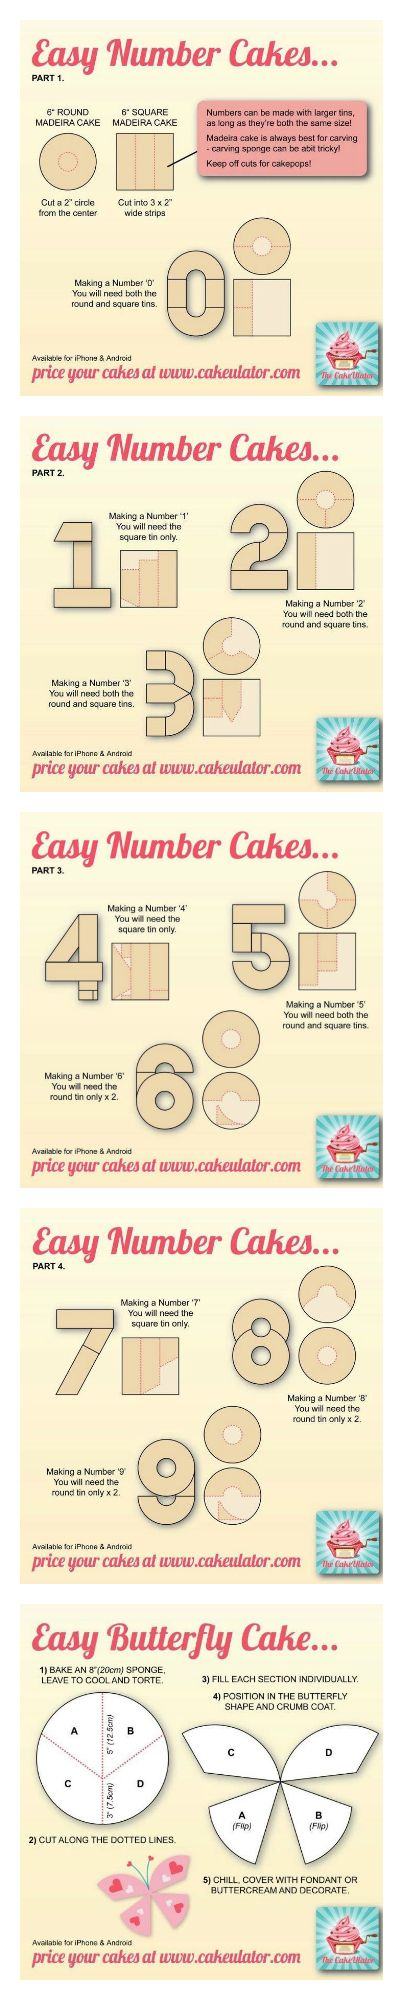 How to create easy number cakes, no special tins required!